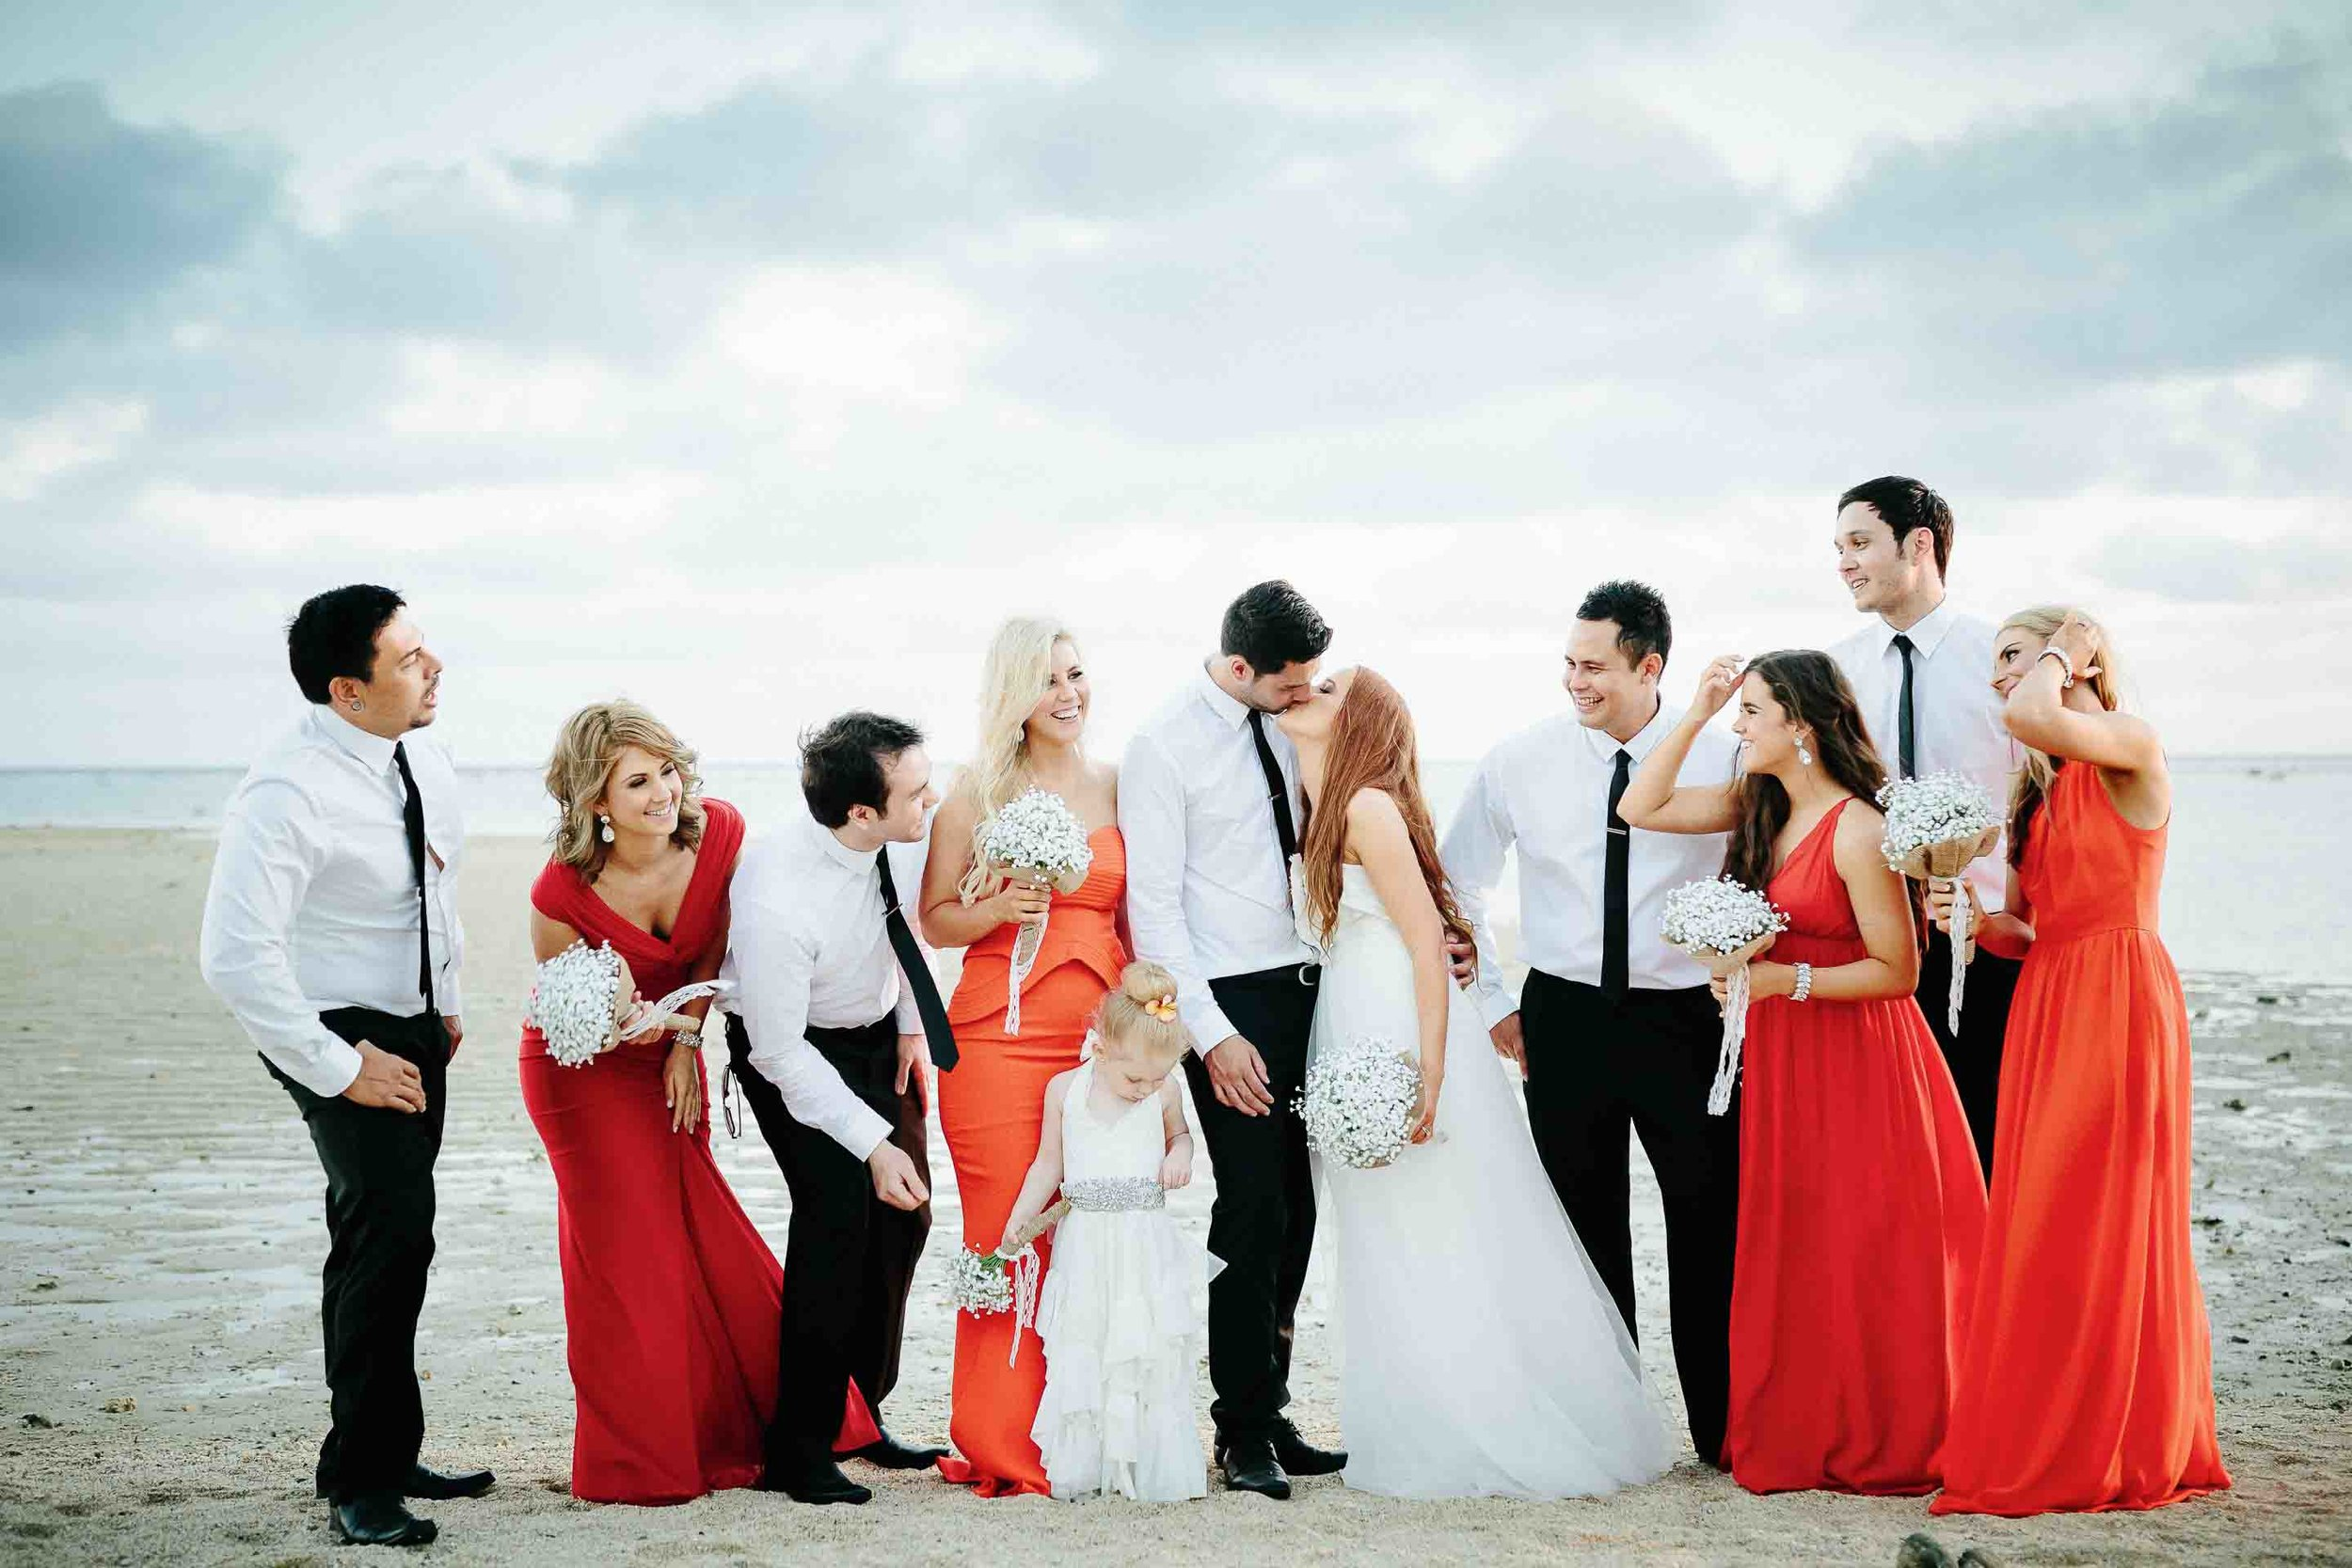 husband and wife kissing as the rest of the bridal party looks on